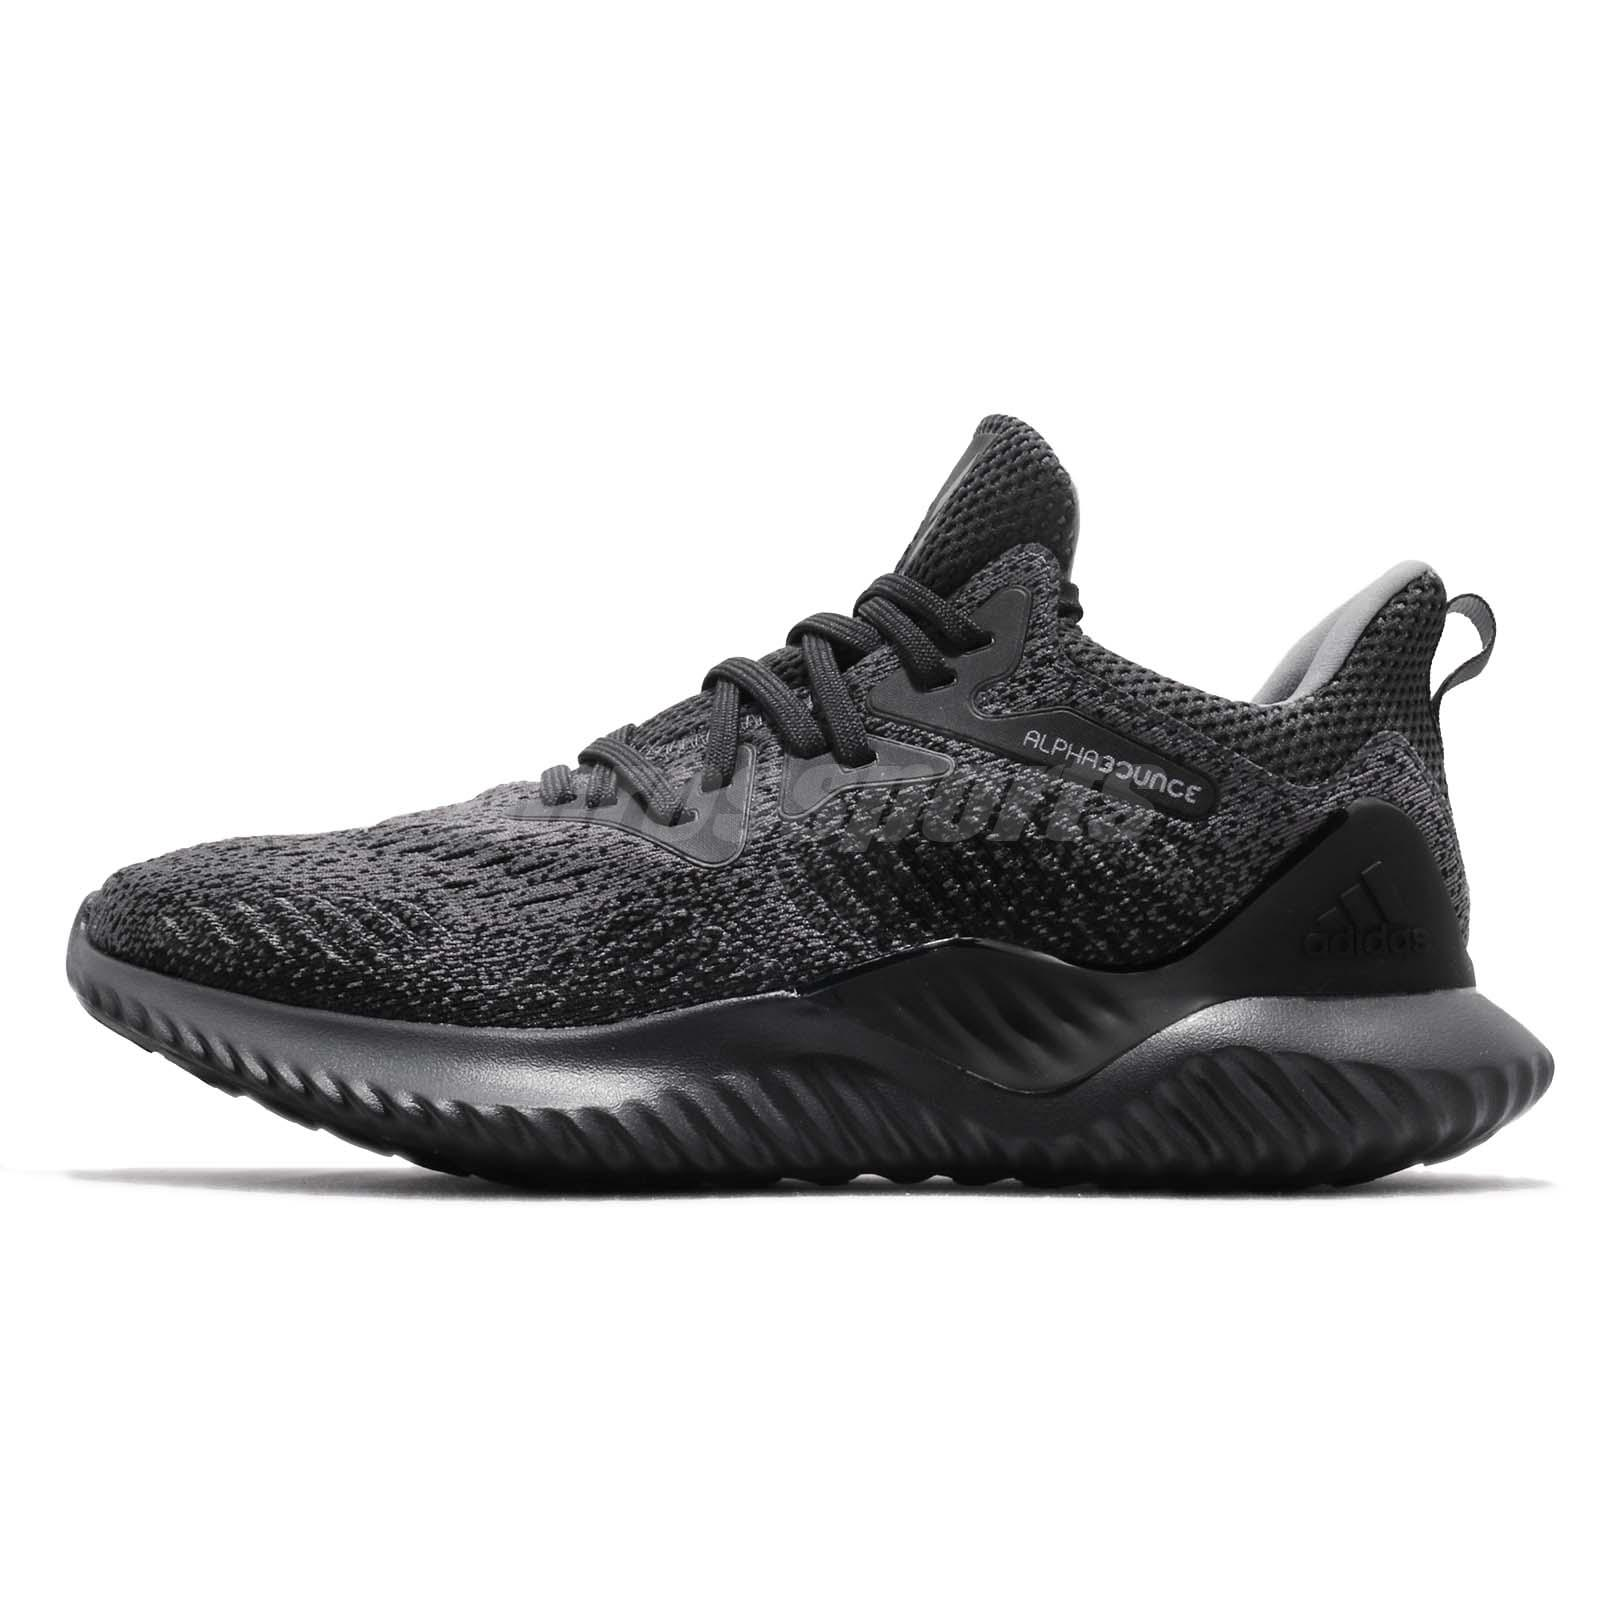 adidas Alphabounce Beyond M Carbon Grey Men Running Training Shoe Sneaker  AQ0573 778e020e9